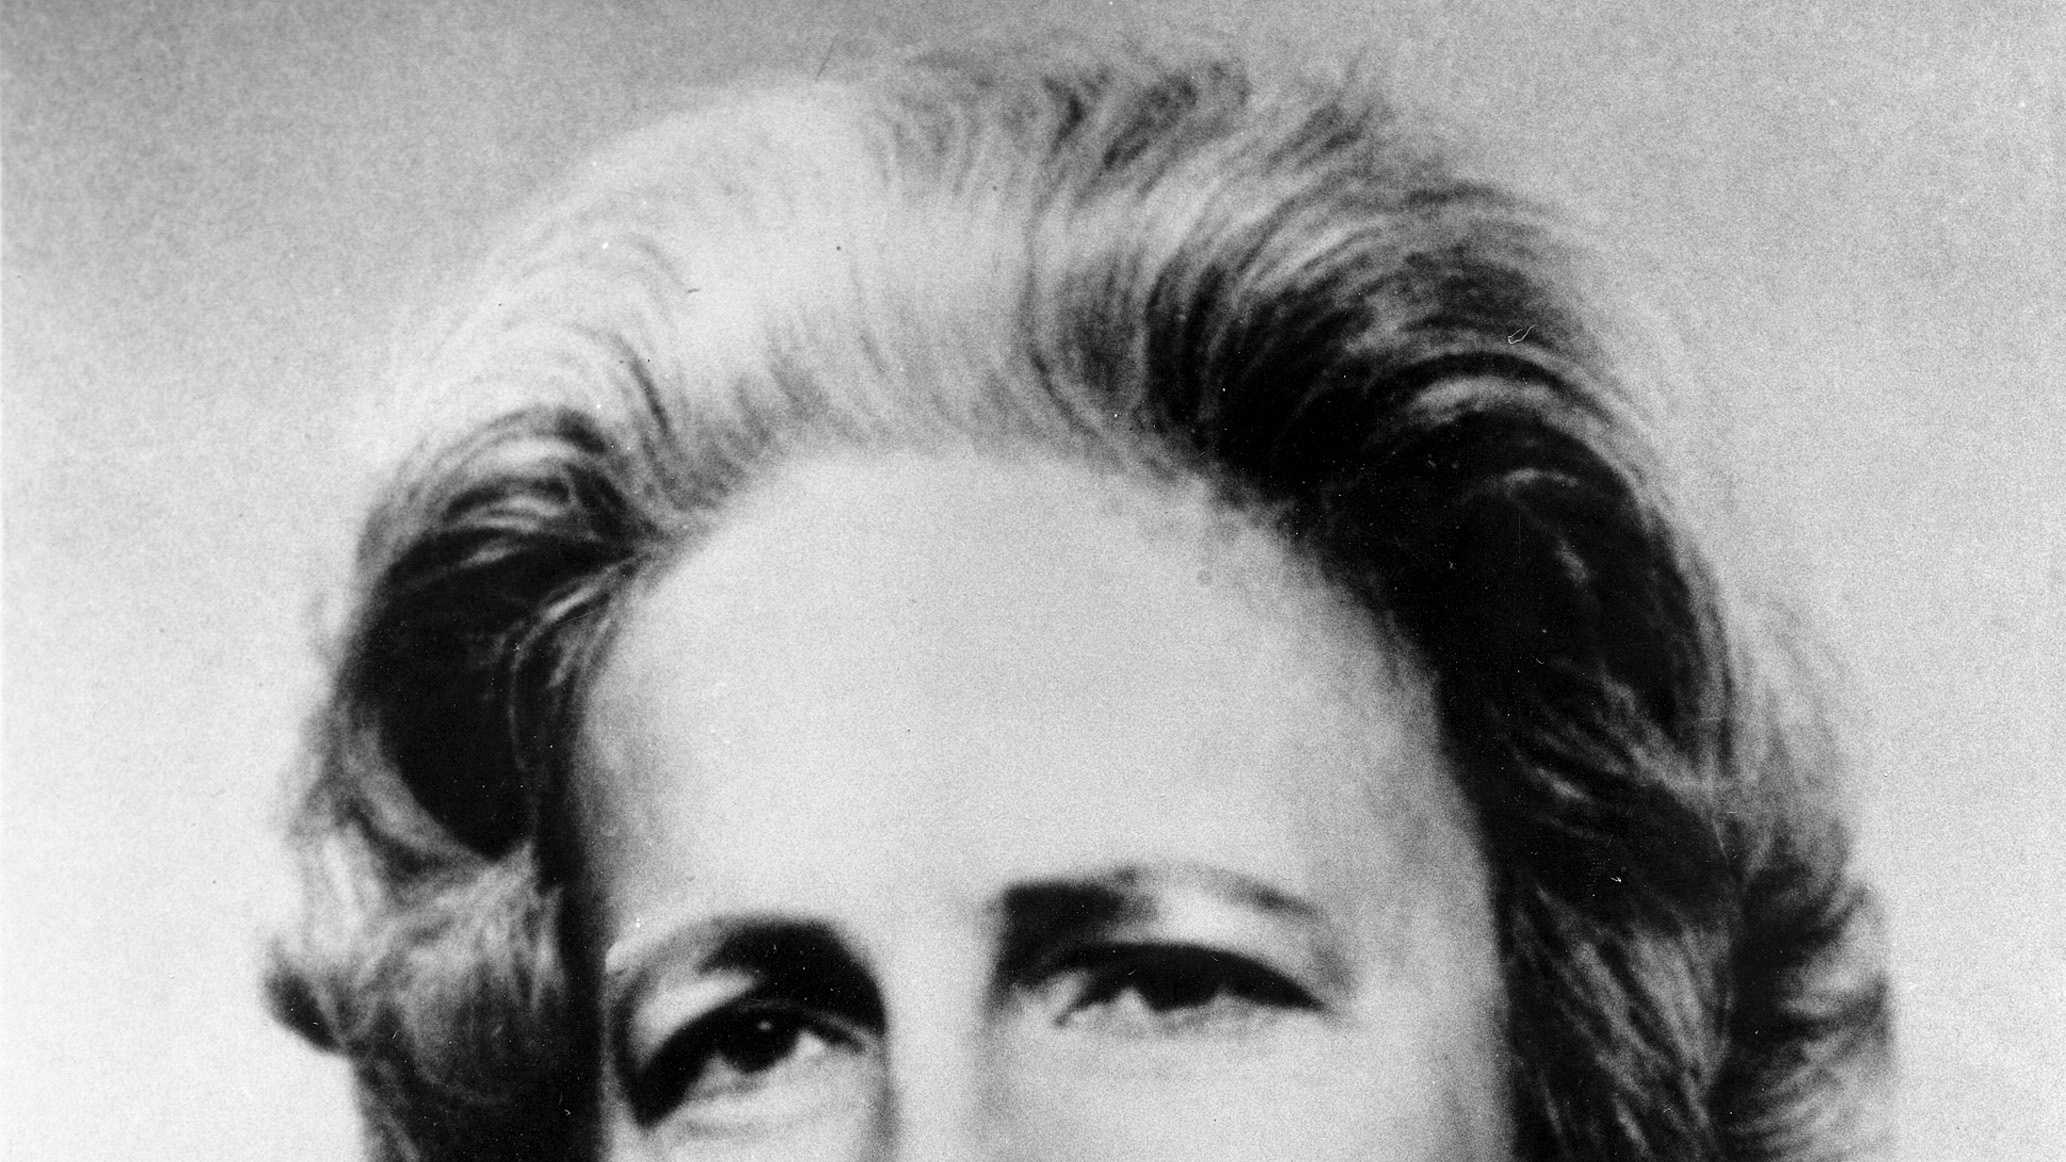 Letitia Baldrige was the White House social secretary during the Kennedy administration who came to be regarded as an authority on etiquette.(February 9, 1926 – October 29, 2012)